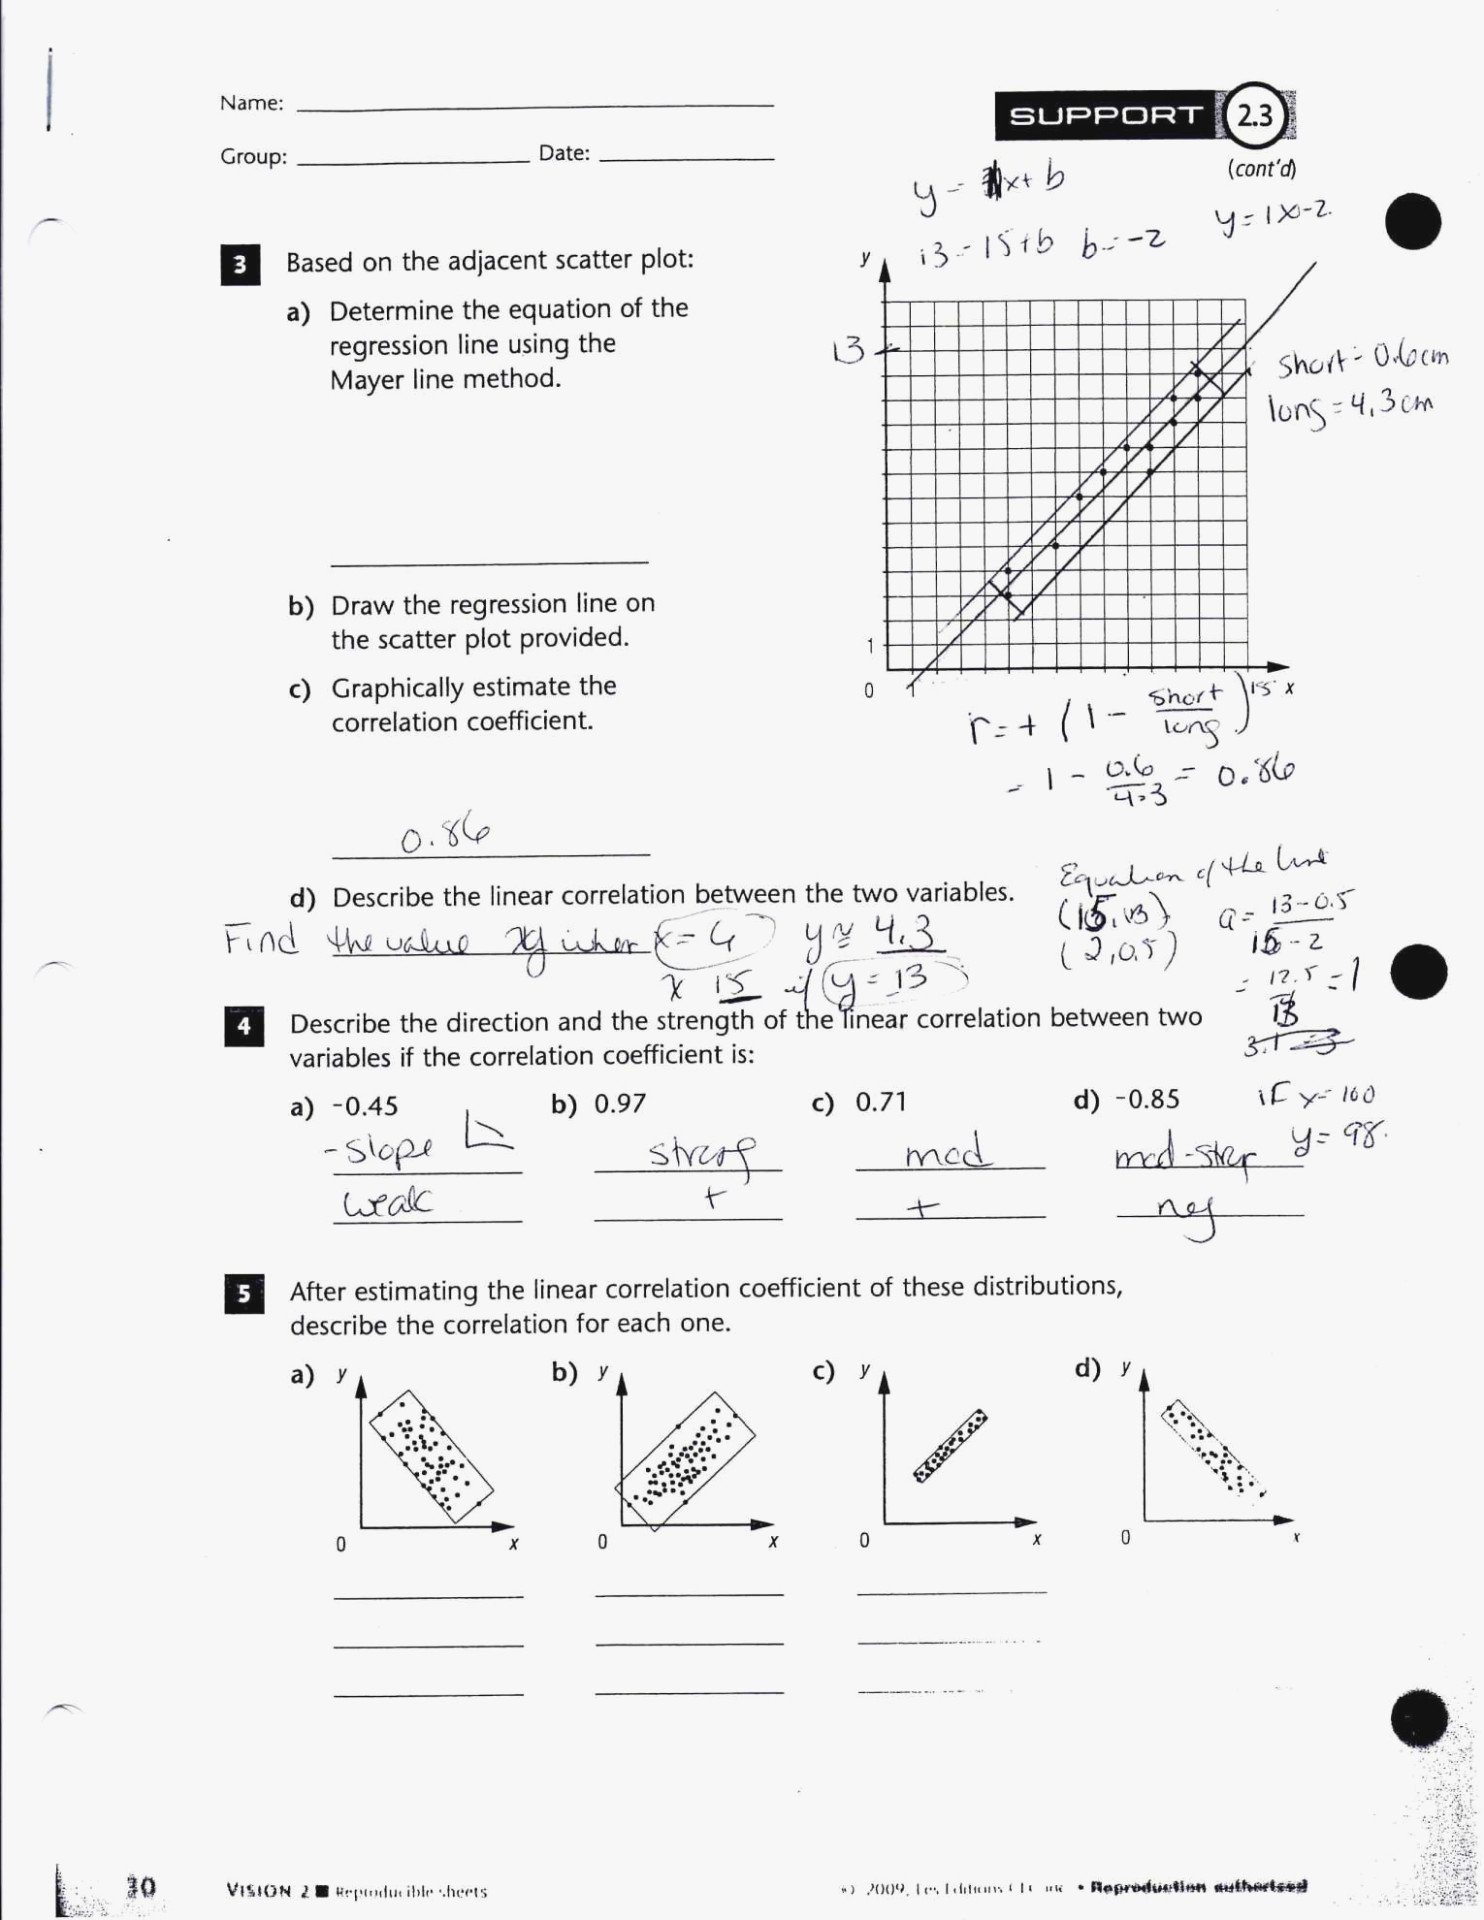 50 Worksheet Labeling Waves Answer Key